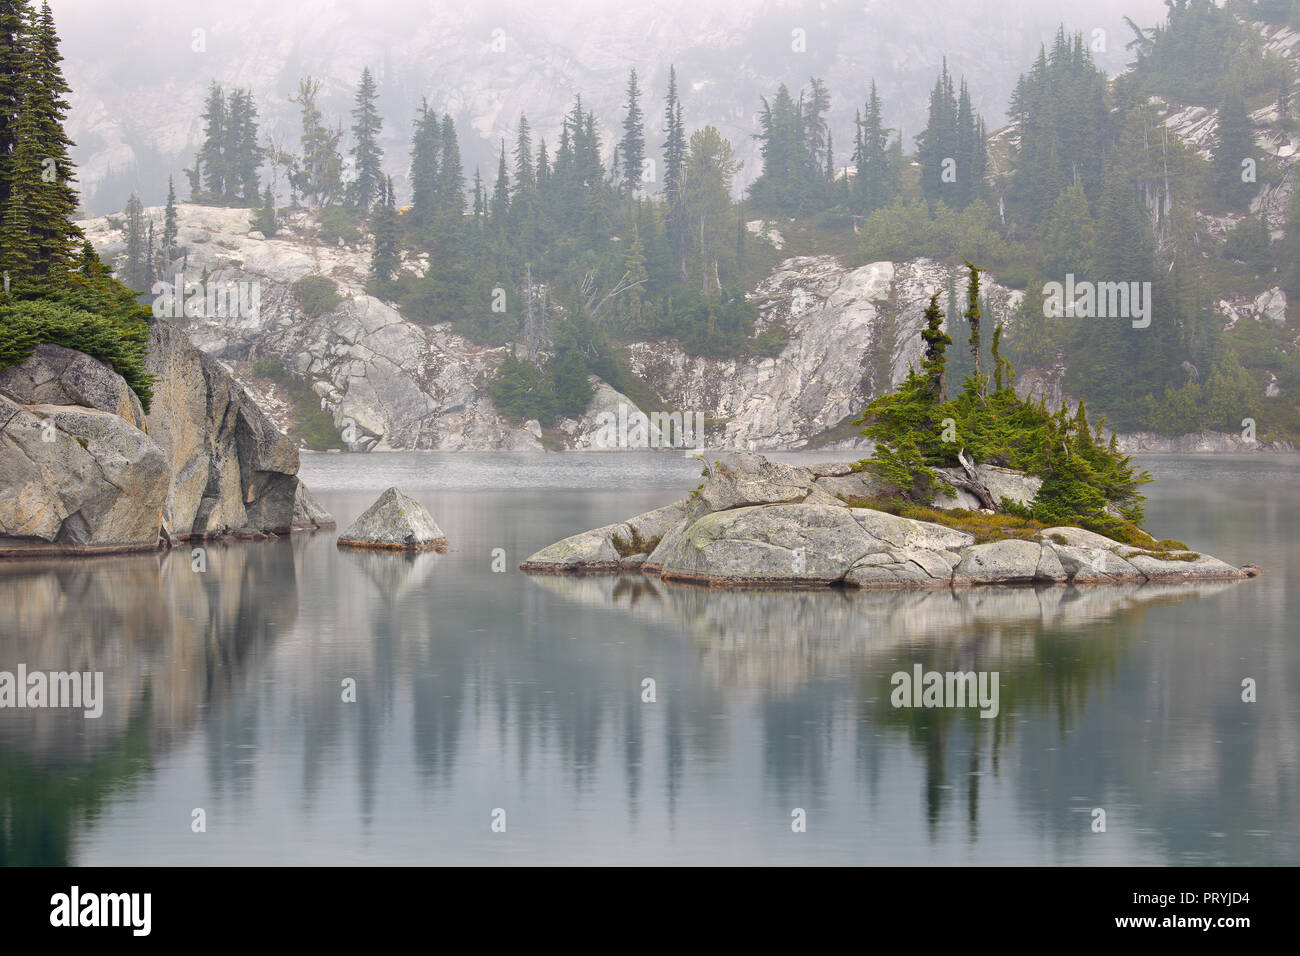 Tuck Lake, Snoqualmie Region, Mount Baker Wilderness, Washington State - Stock Image